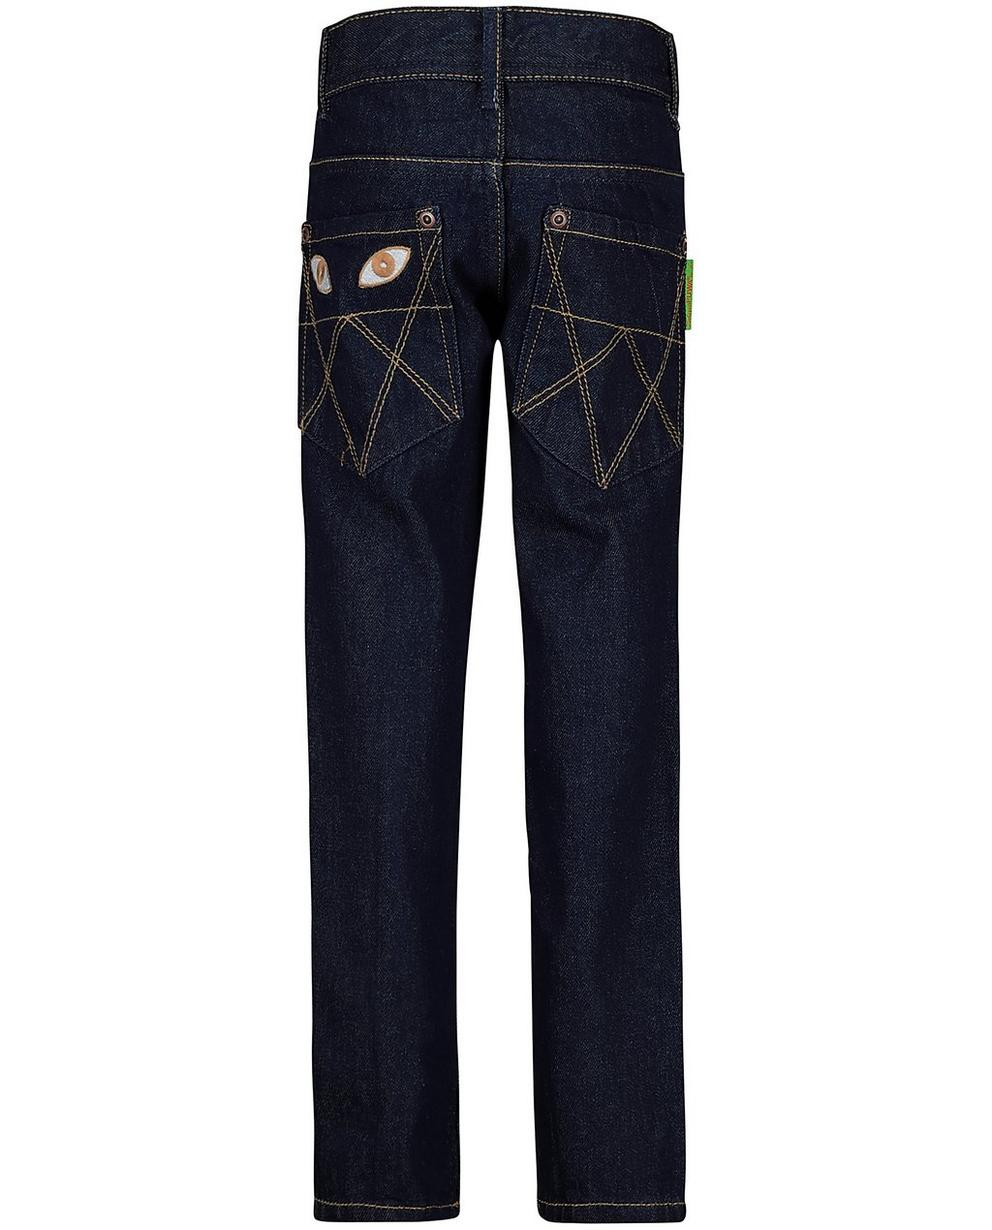 Jeans - BLD - Donkerblauwe jeans